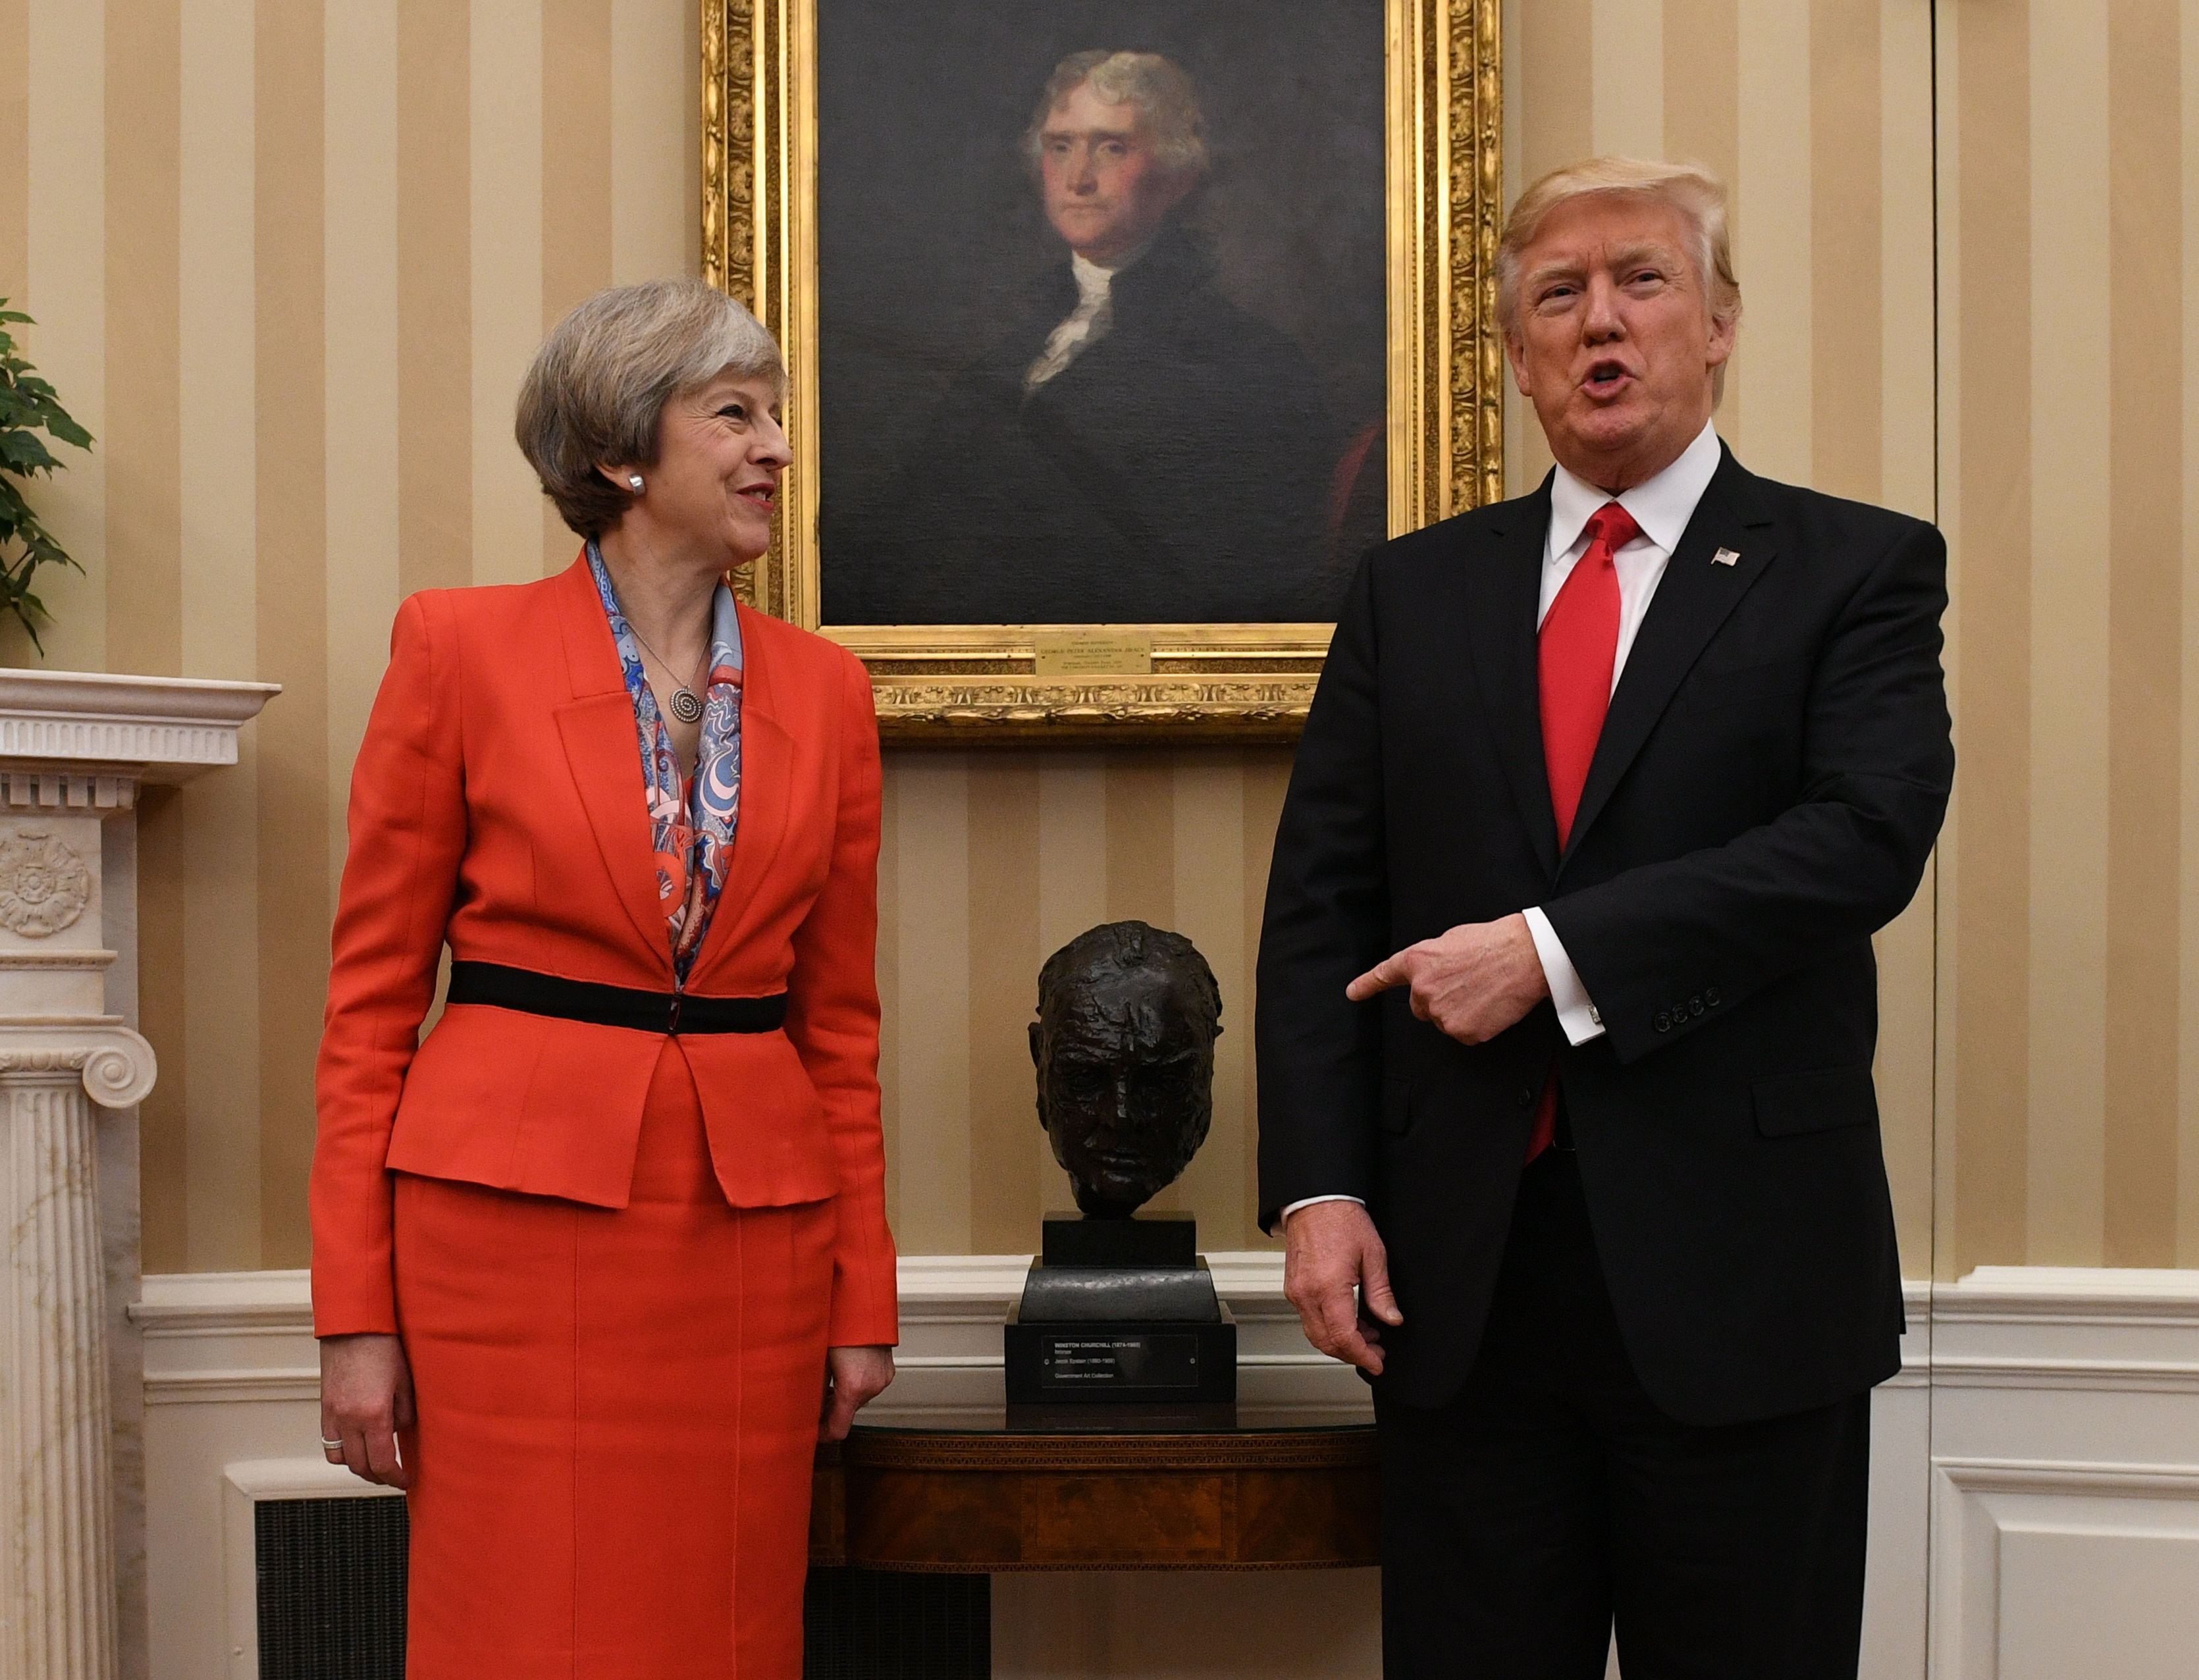 Theresa May meets Donald Trump as he points to a bust of Sir Winston Churchill